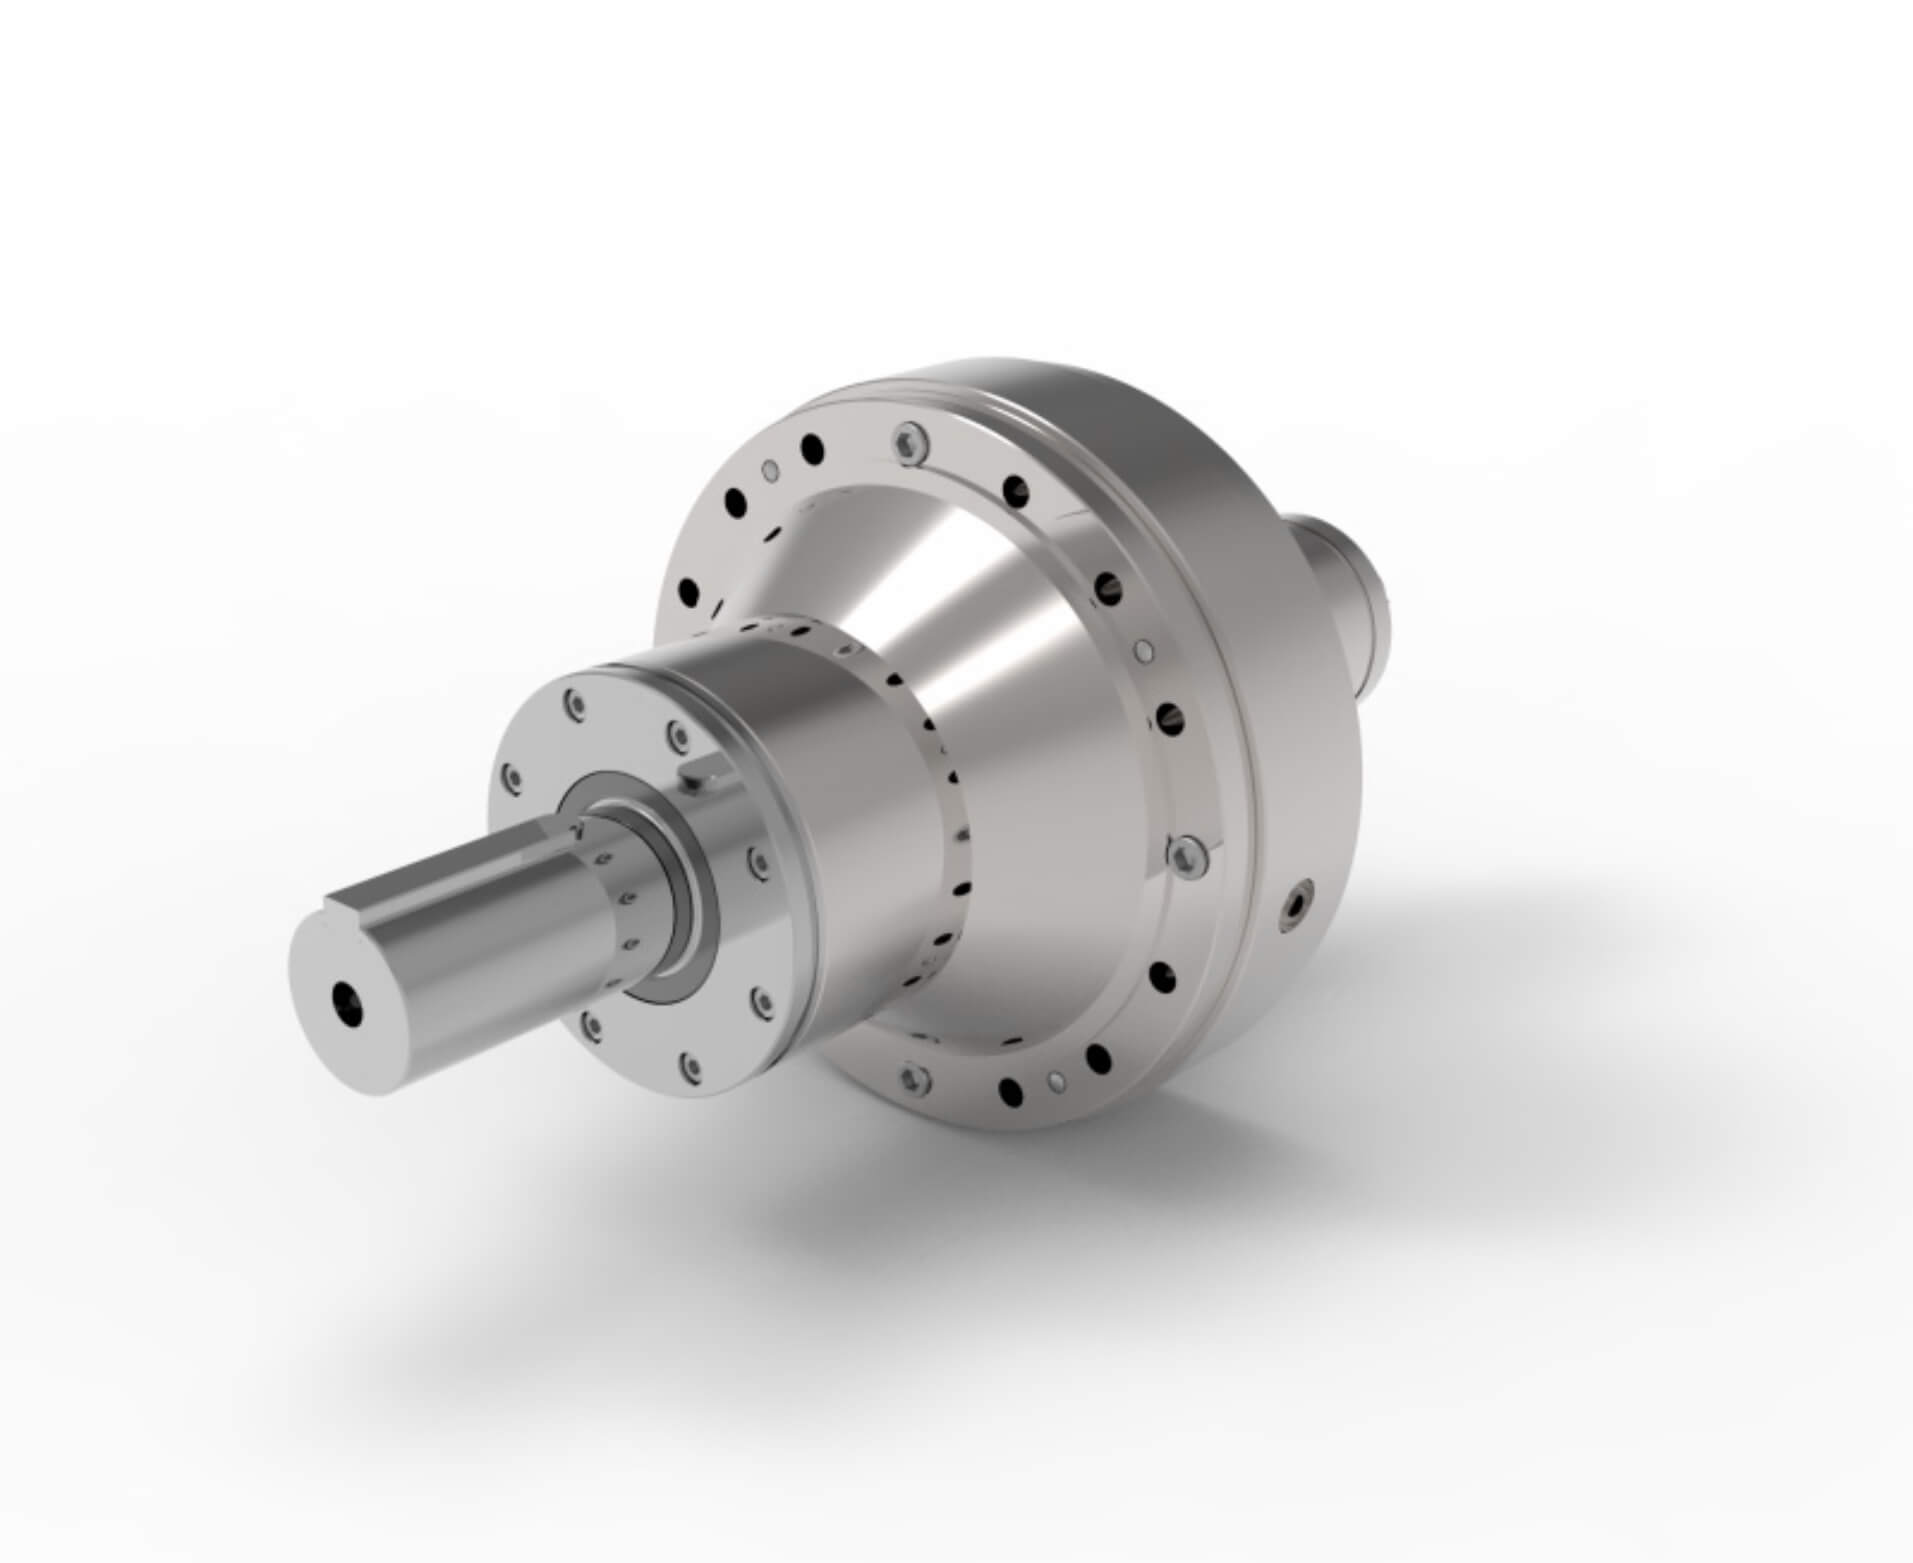 3D image of . travel motor design using speed reducers for AGV and other applications